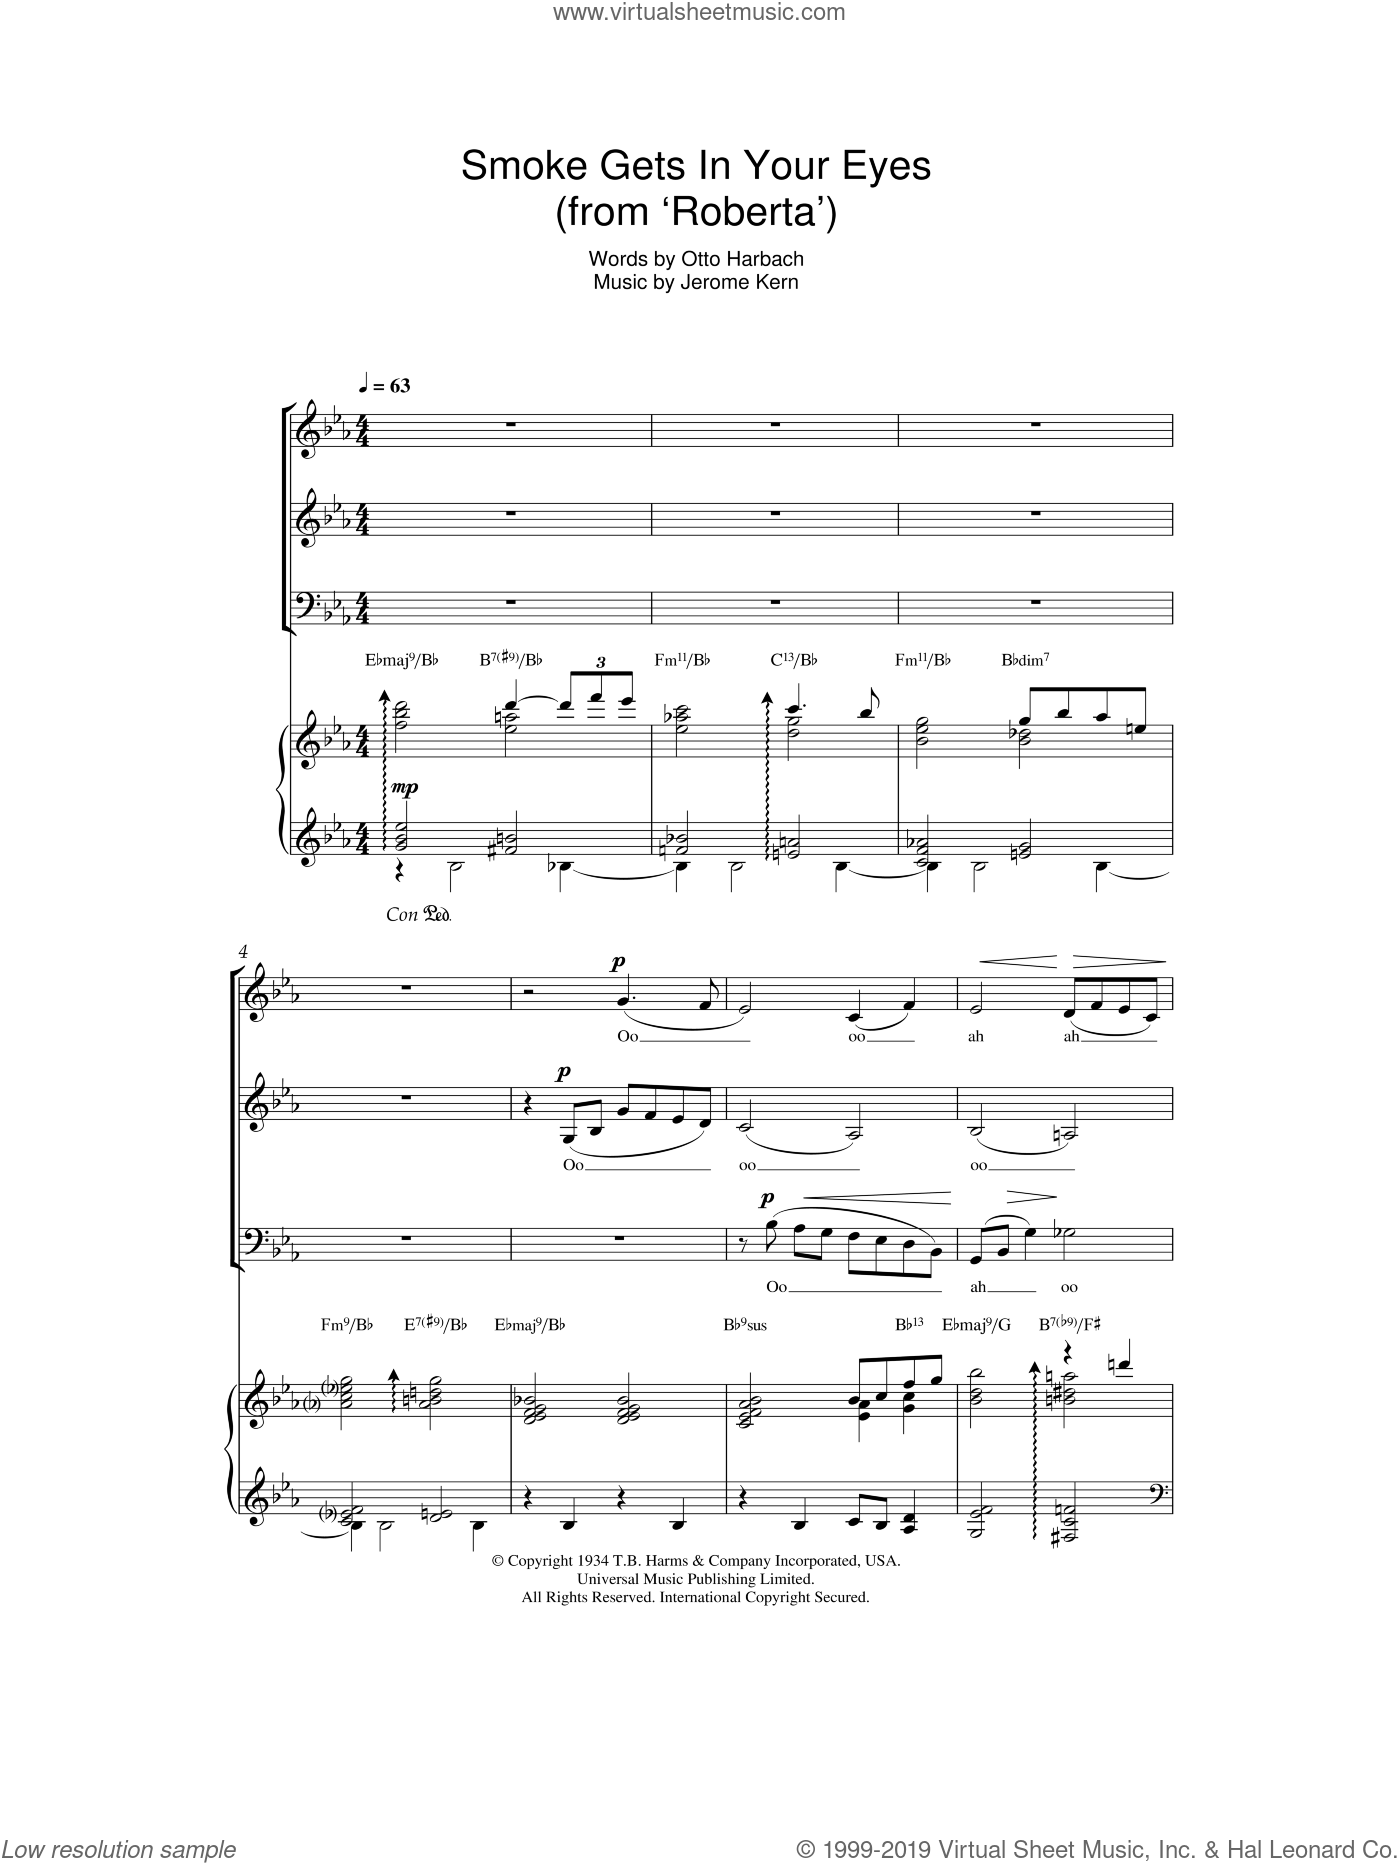 Smoke Gets In Your Eyes (from Roberta) sheet music for voice, piano or guitar by Otto Harbach and Jerome Kern. Score Image Preview.